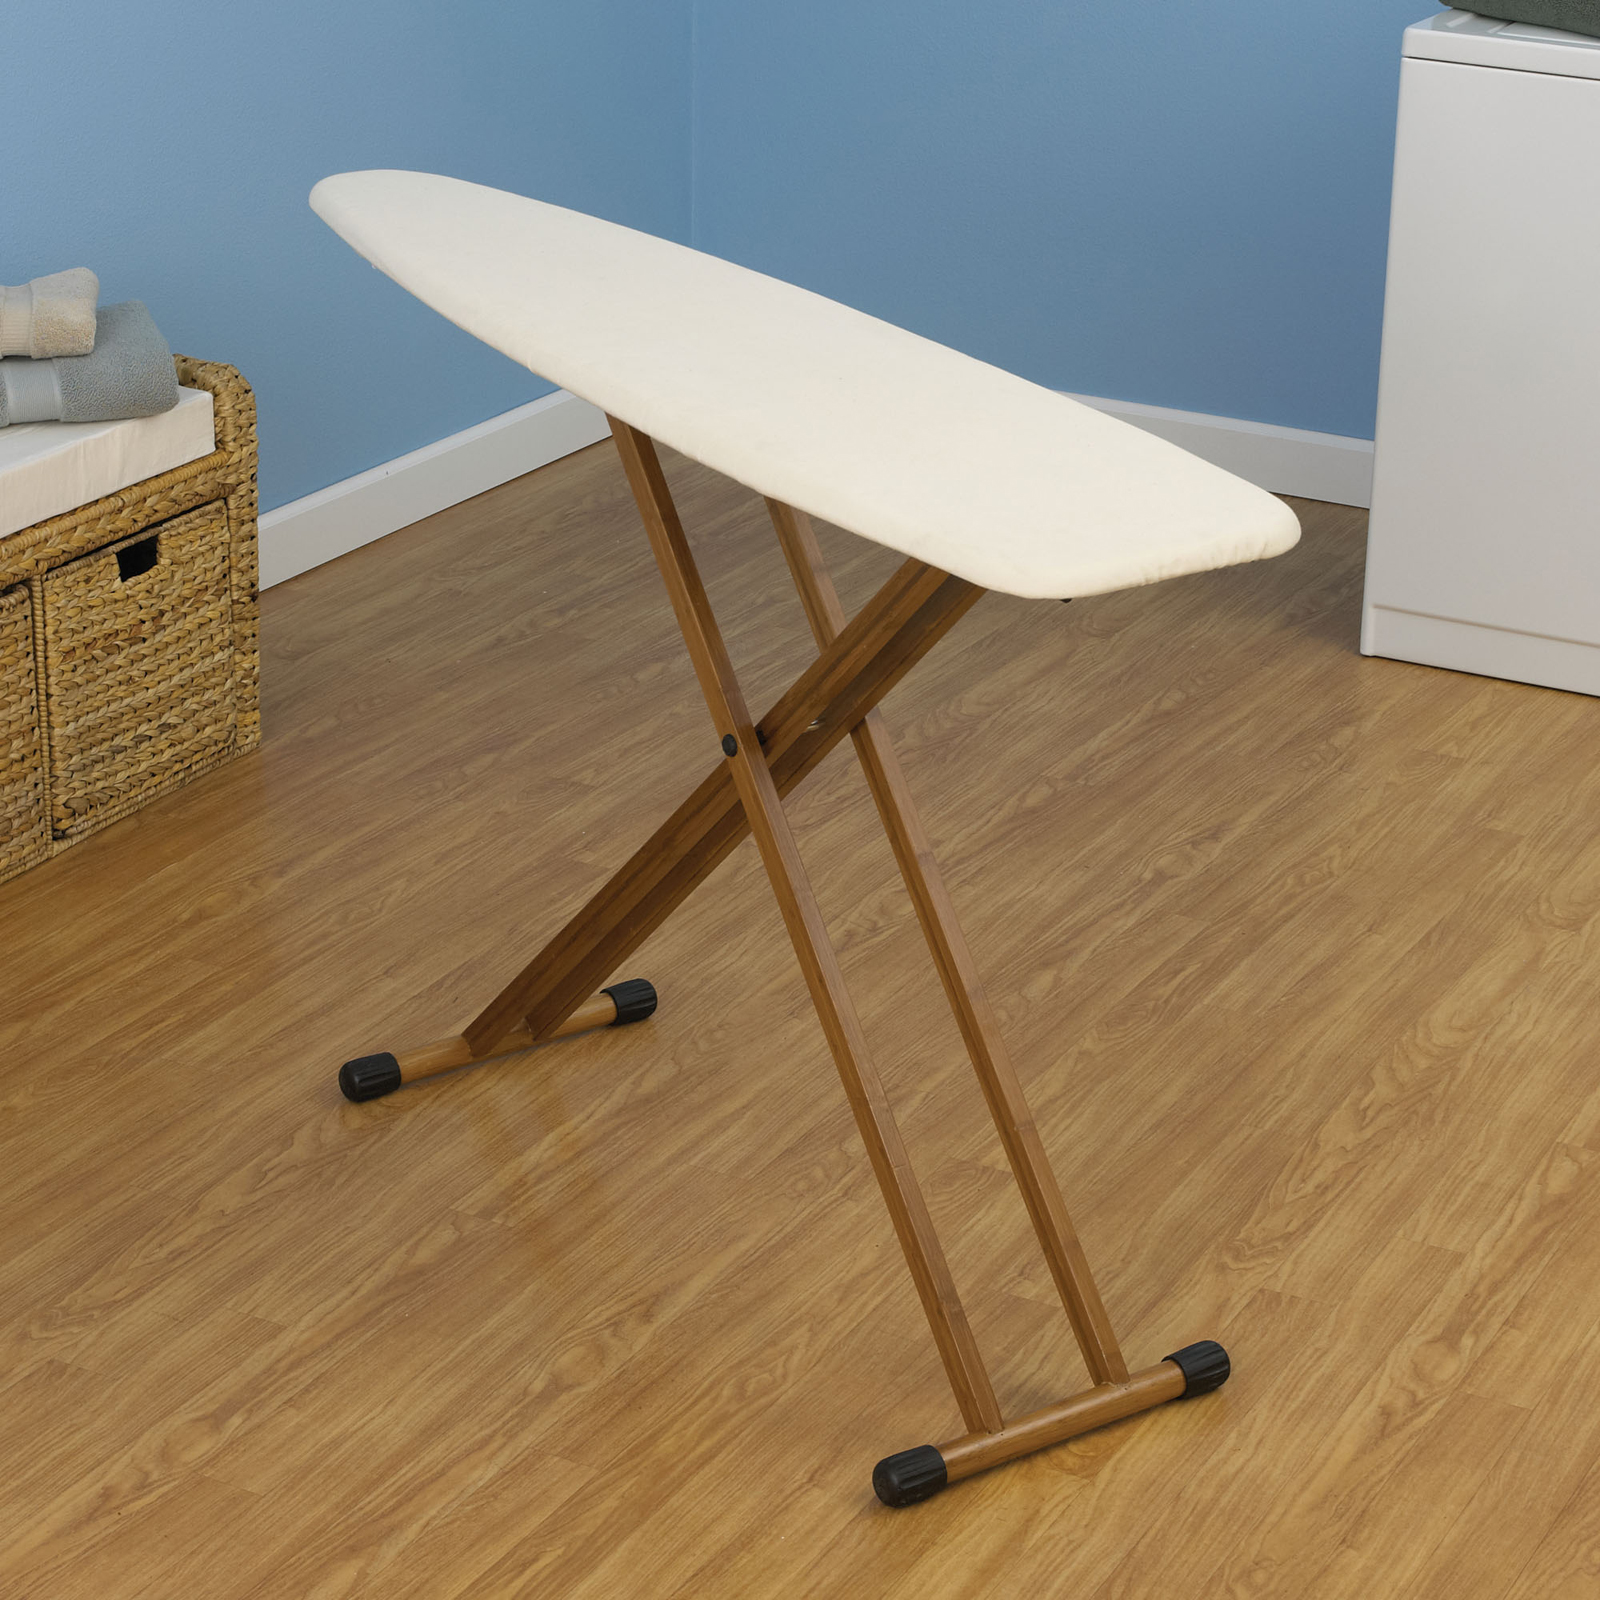 4 leg bamboo ironing board by household essentials in ironin